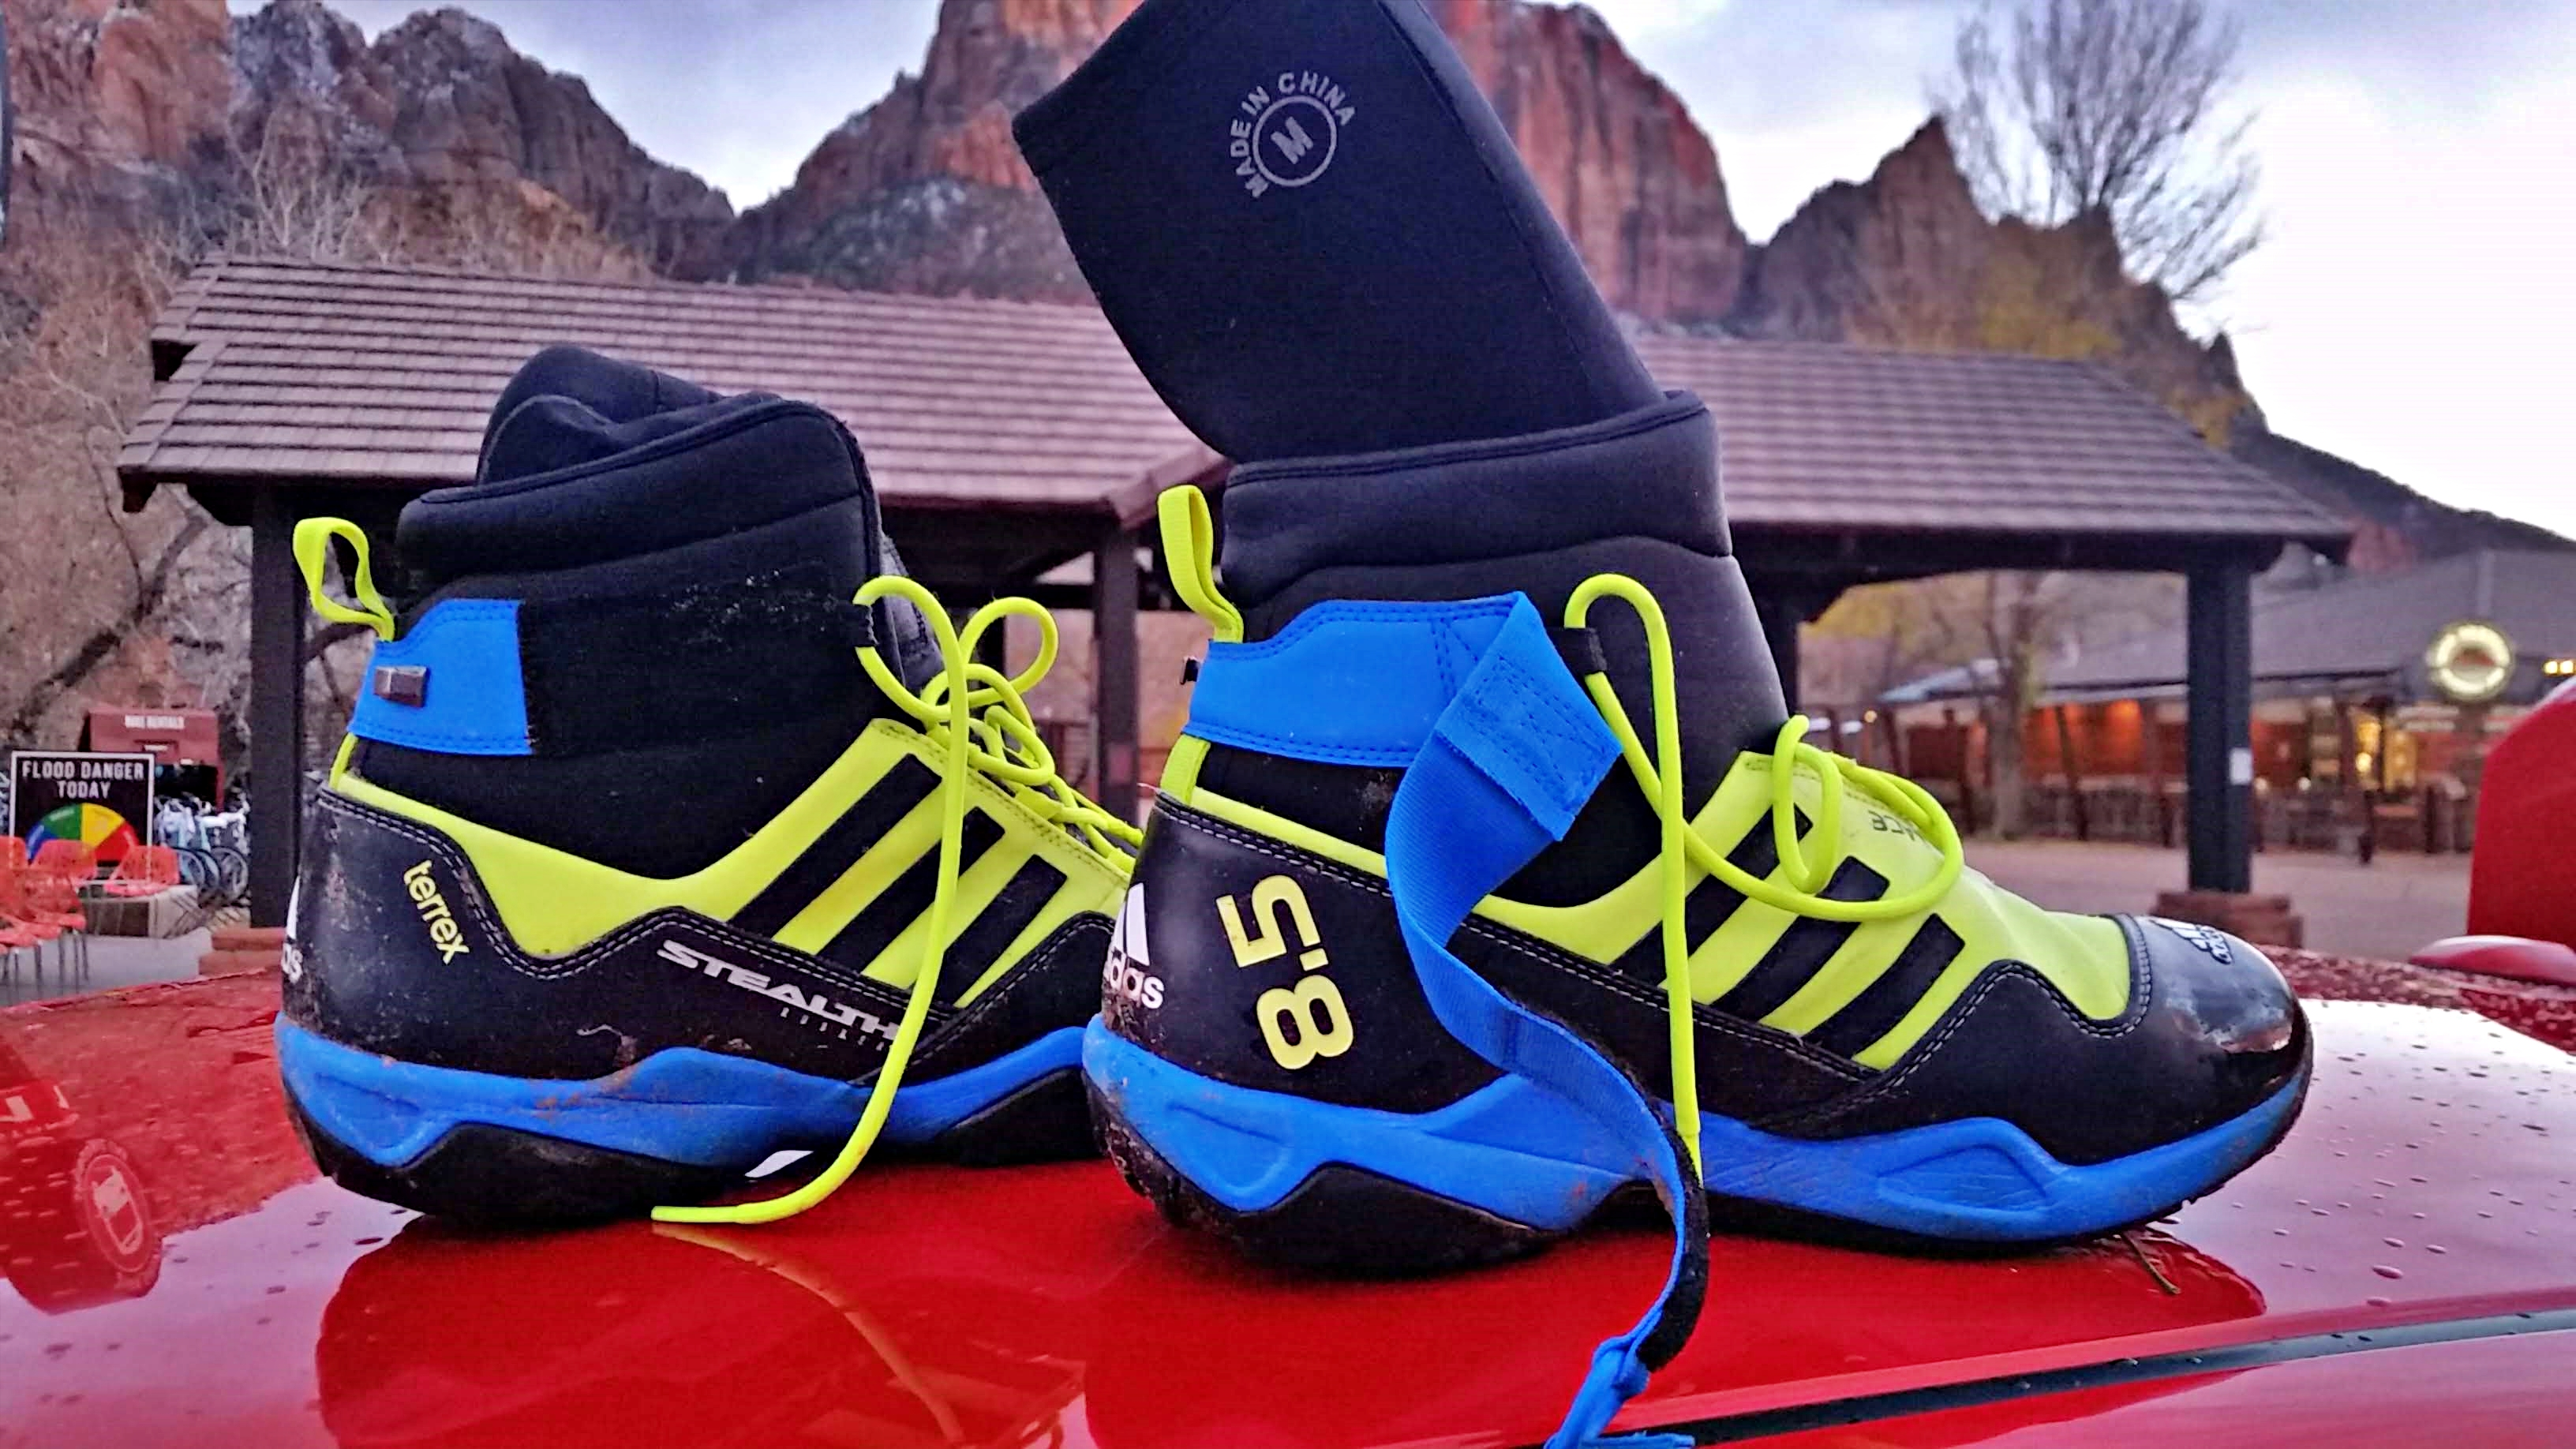 Canyoneering Shoes from Zion Outfitters